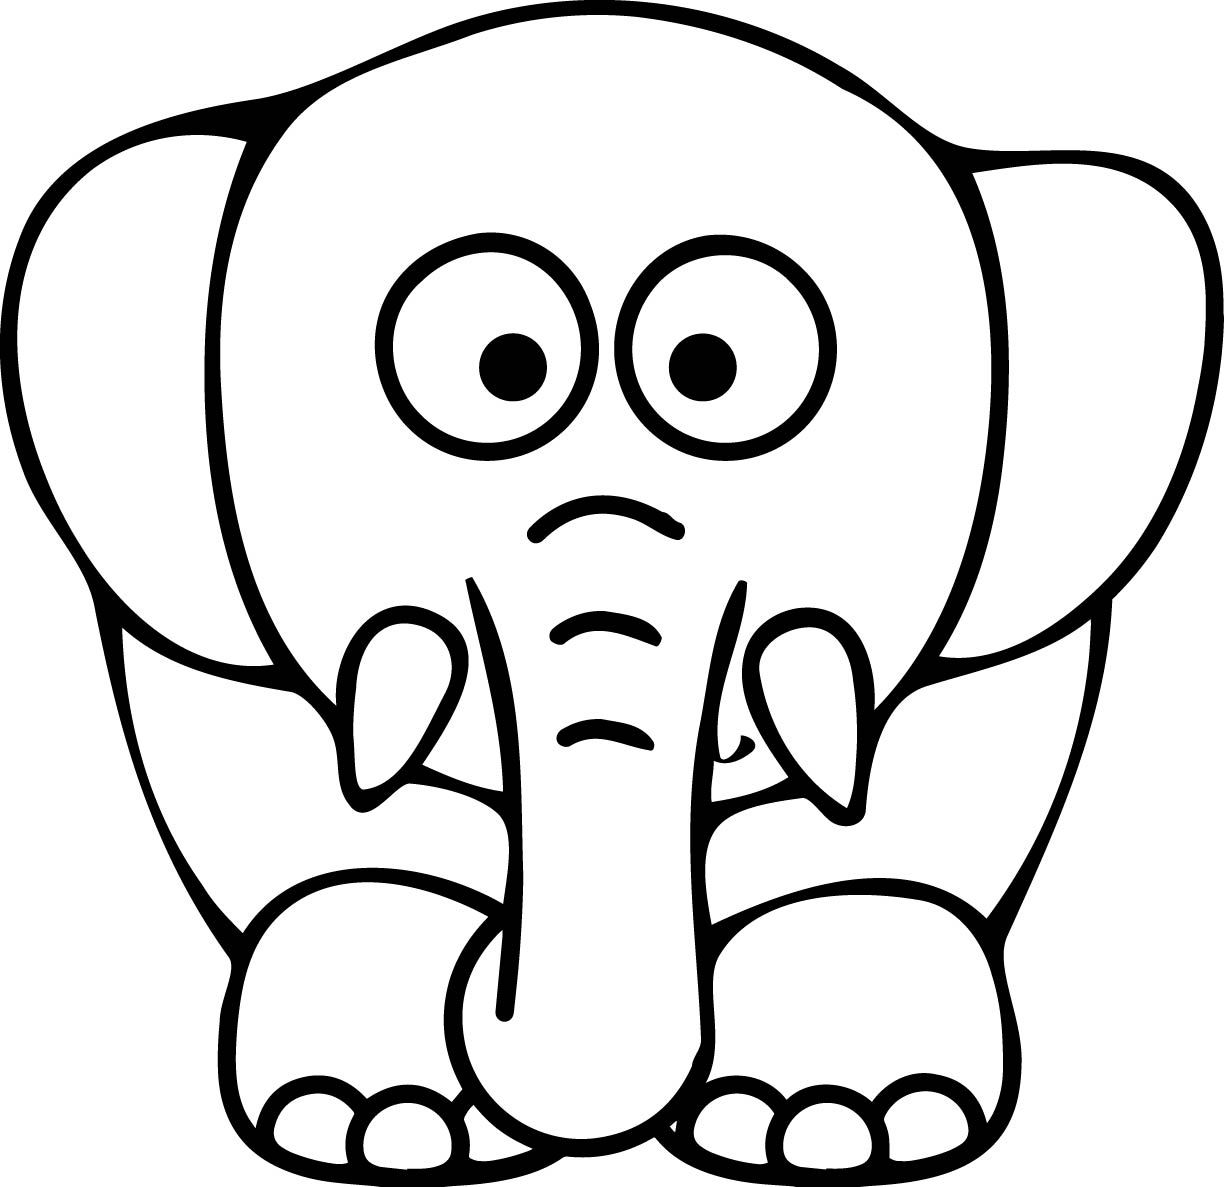 23+ Printable animals coloring pages elephant information